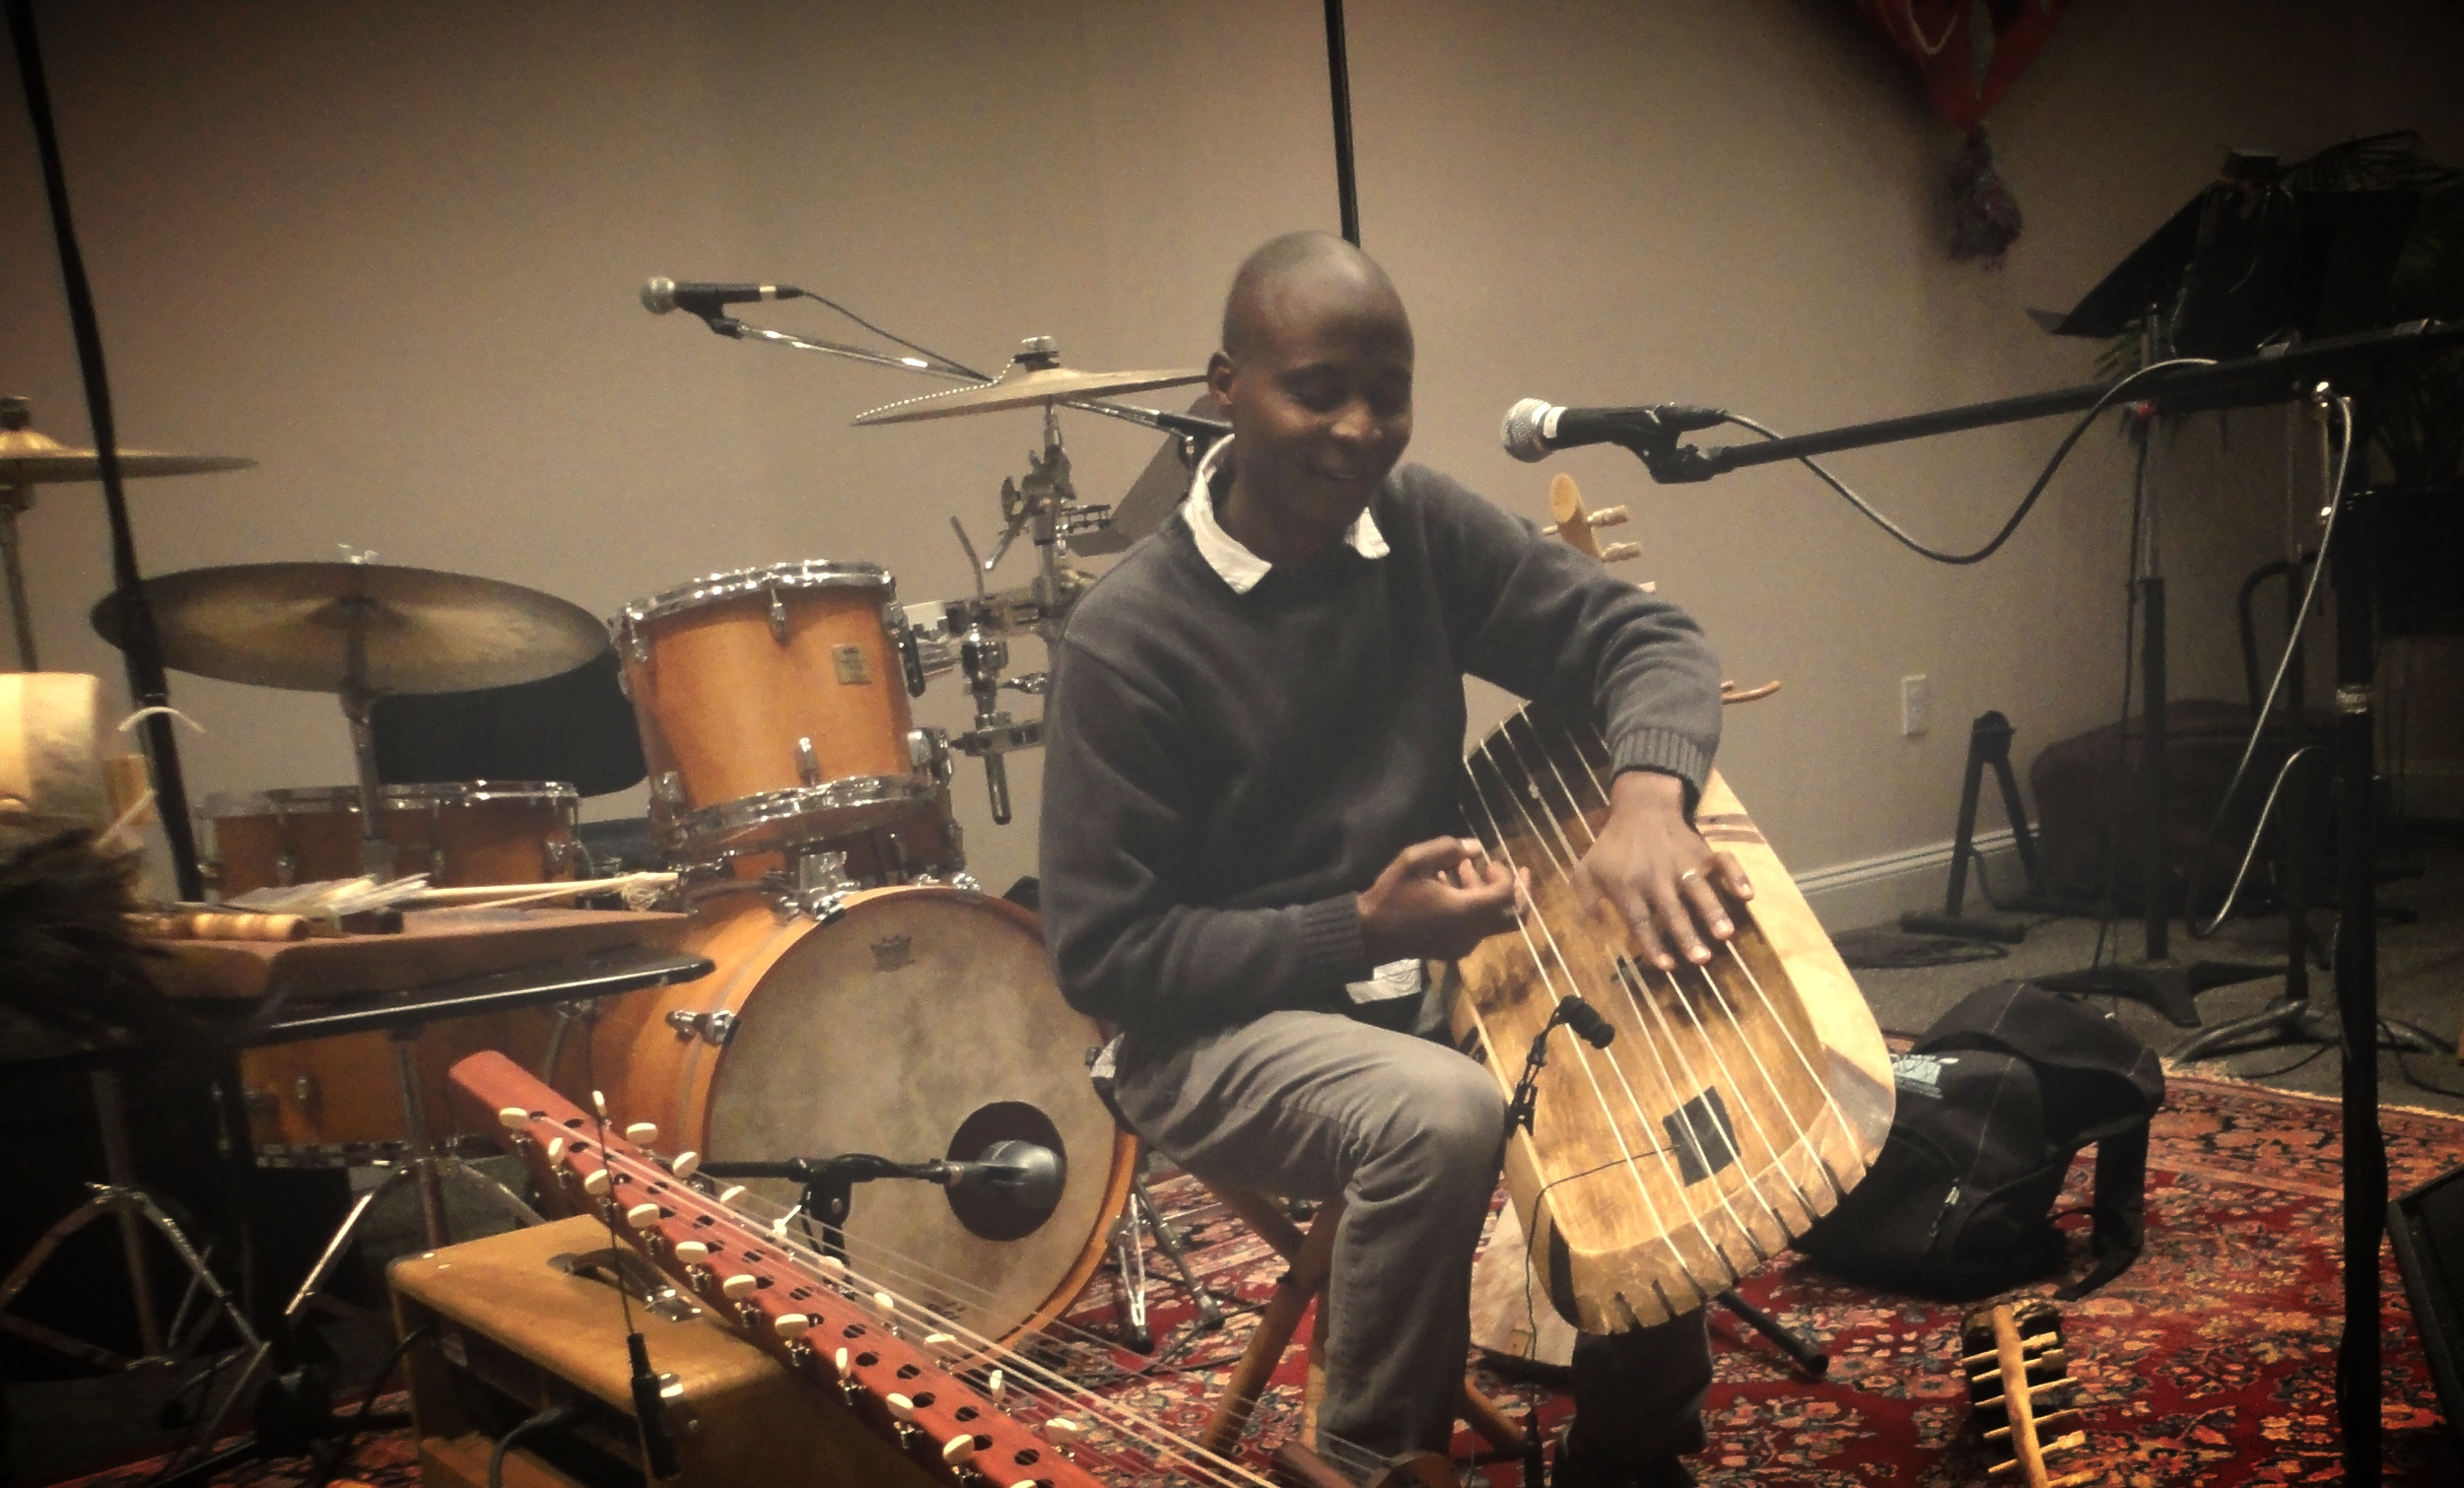 Gideon Ampere is a master musician and instrument maker from Uganda, East Africa.Gideon shares the music and dance of his homeland with any and all who will listen, appreciate, and participate. He has experience performing on several Ugandan folk instruments including zithers, bow harps, tube fiddles, lyres, flutes, thumb pianos, panpipes, log xylophones and drums.Gideon has participated in workshops and artists gathering over many years as part of the CT Cultural Heritage Arts Program.He has a Master of Arts in ethnomusicology from Wesleyan University and a Bachelors of Arts from the University of Connecticut.